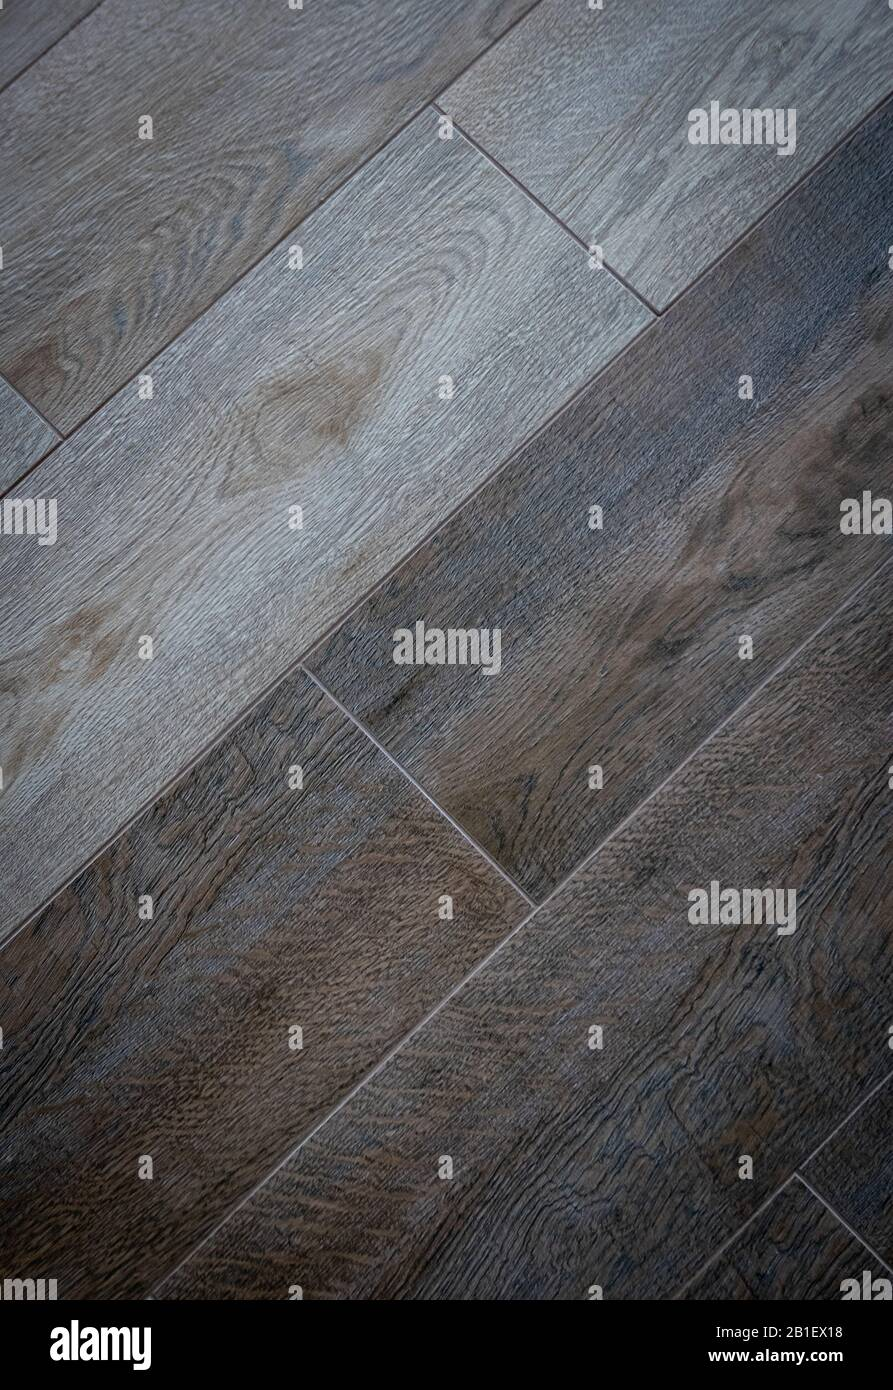 Ceramic Tiles Flooring Texture Of Natural Ceramic Floor Decorating As Wood Stock Photo Alamy